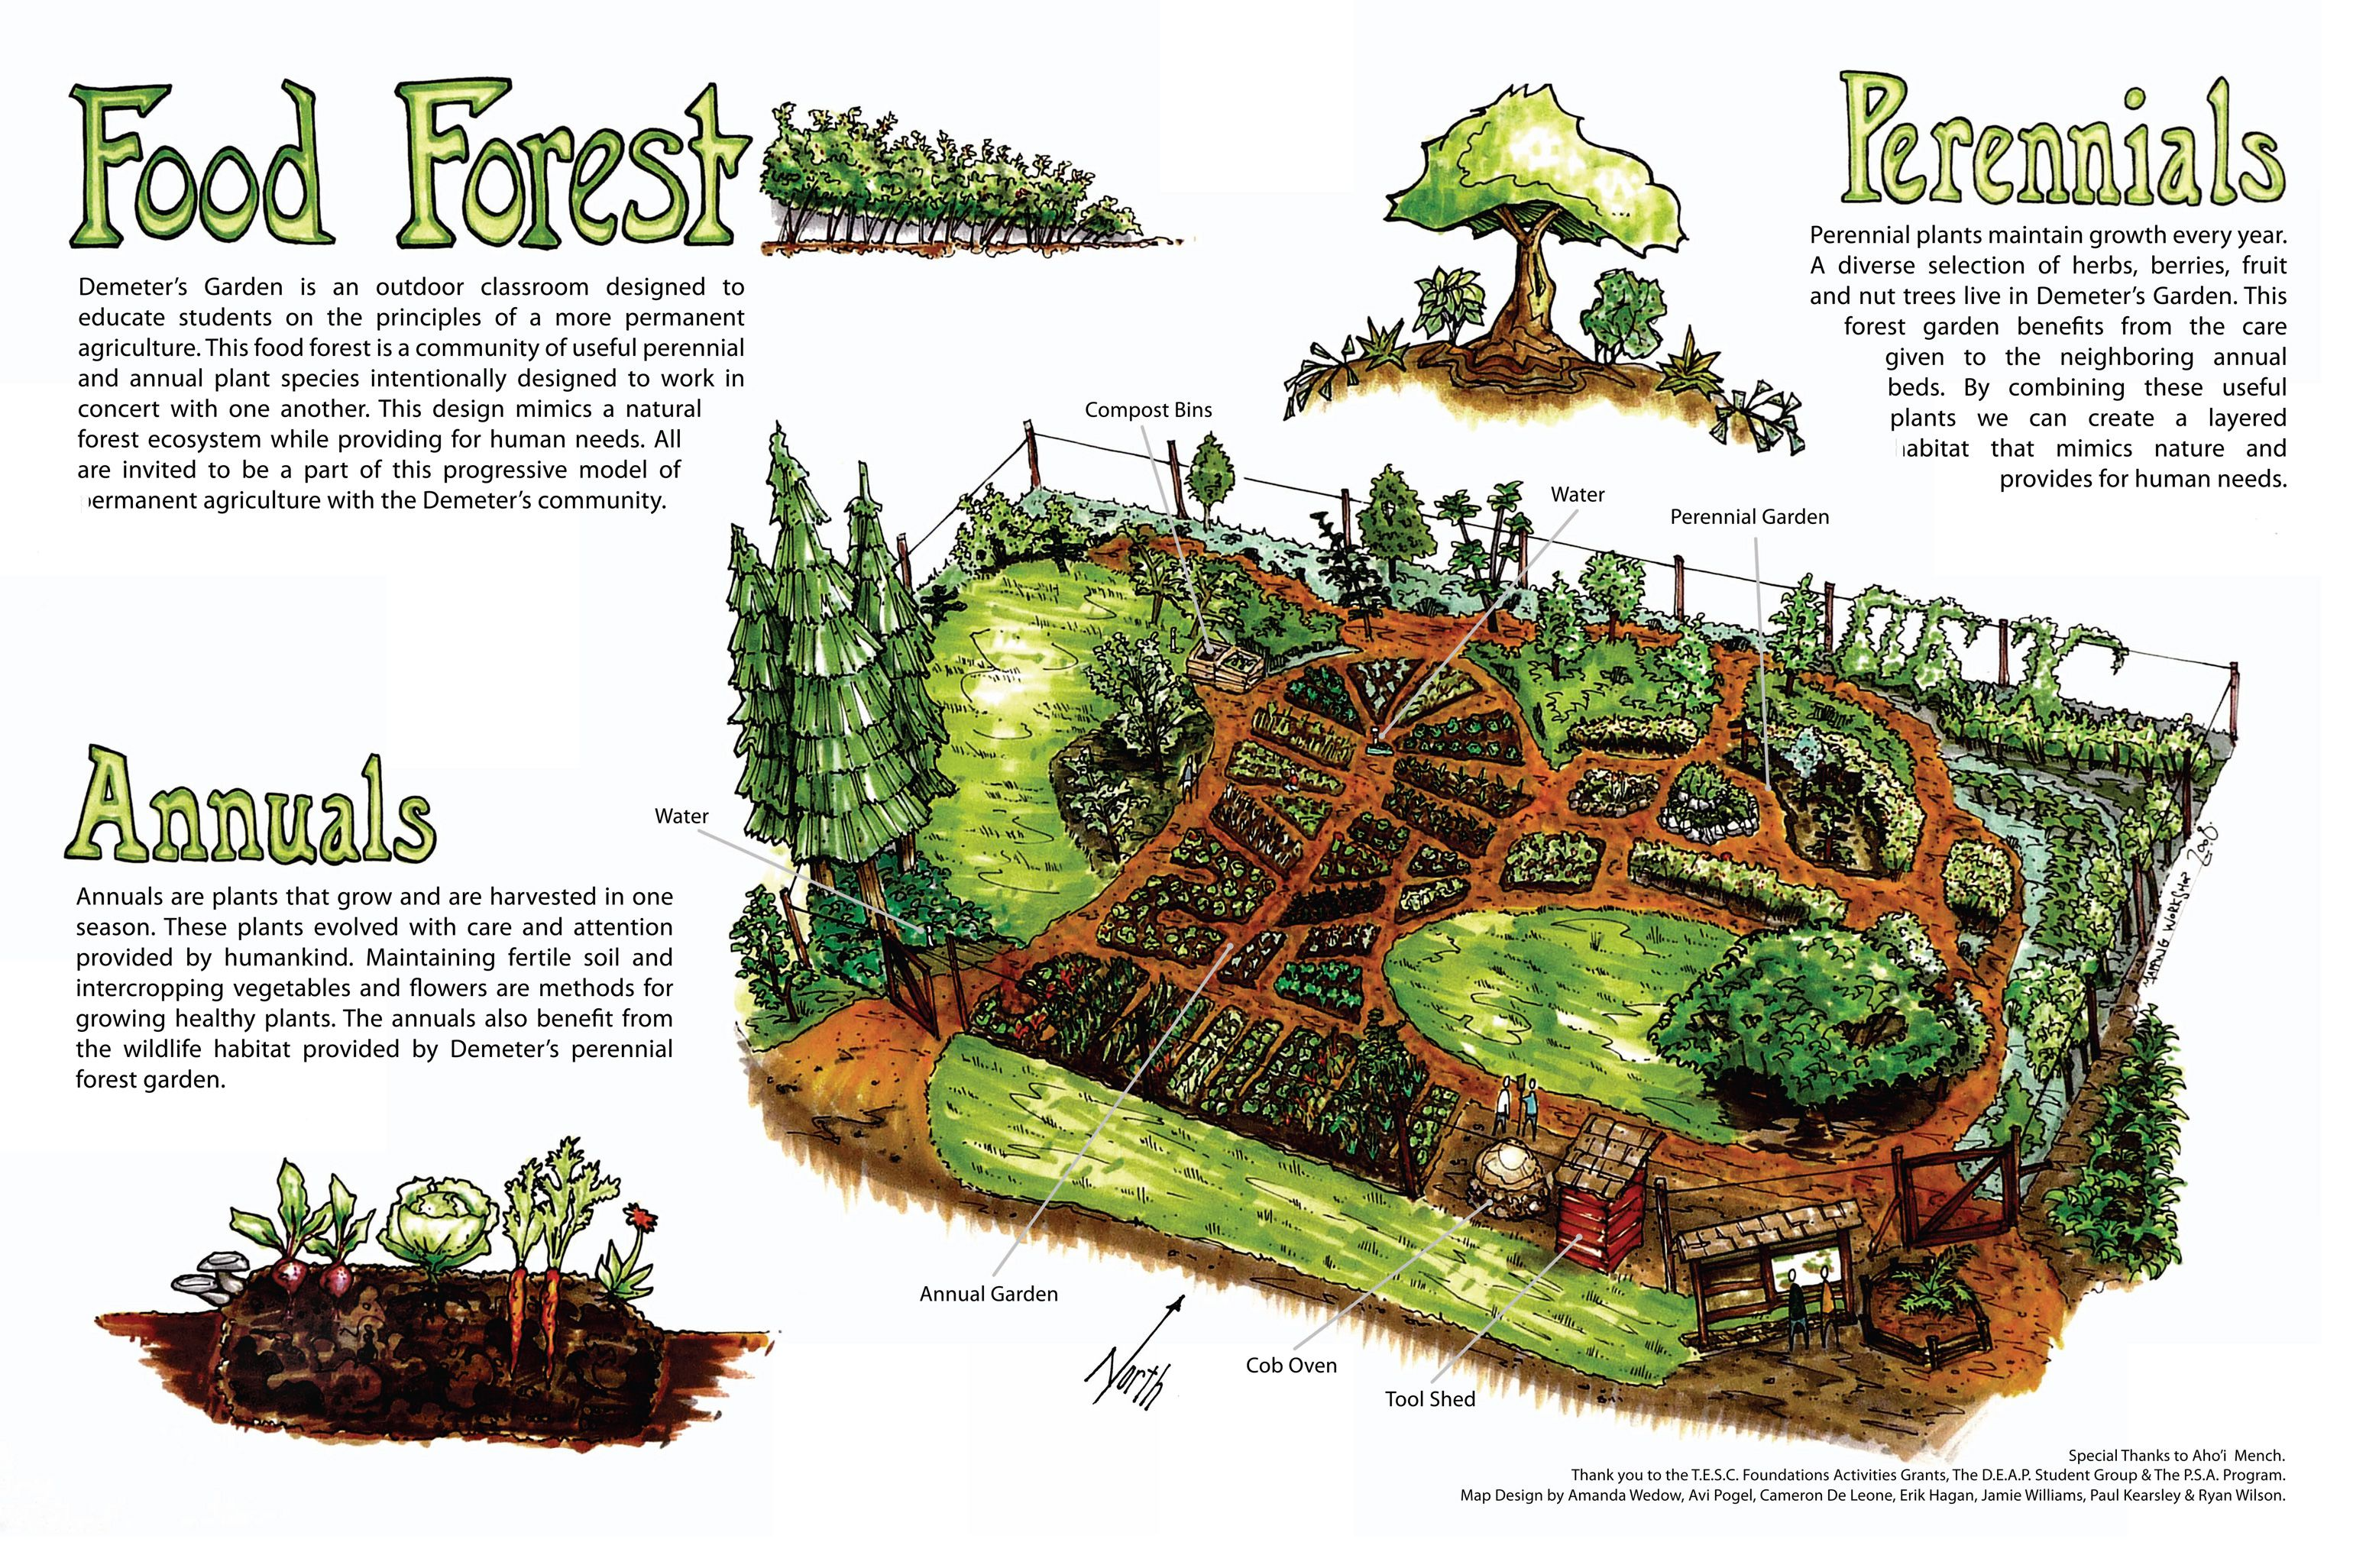 Food forest conceptual diagram by Full Circle Tree Crops